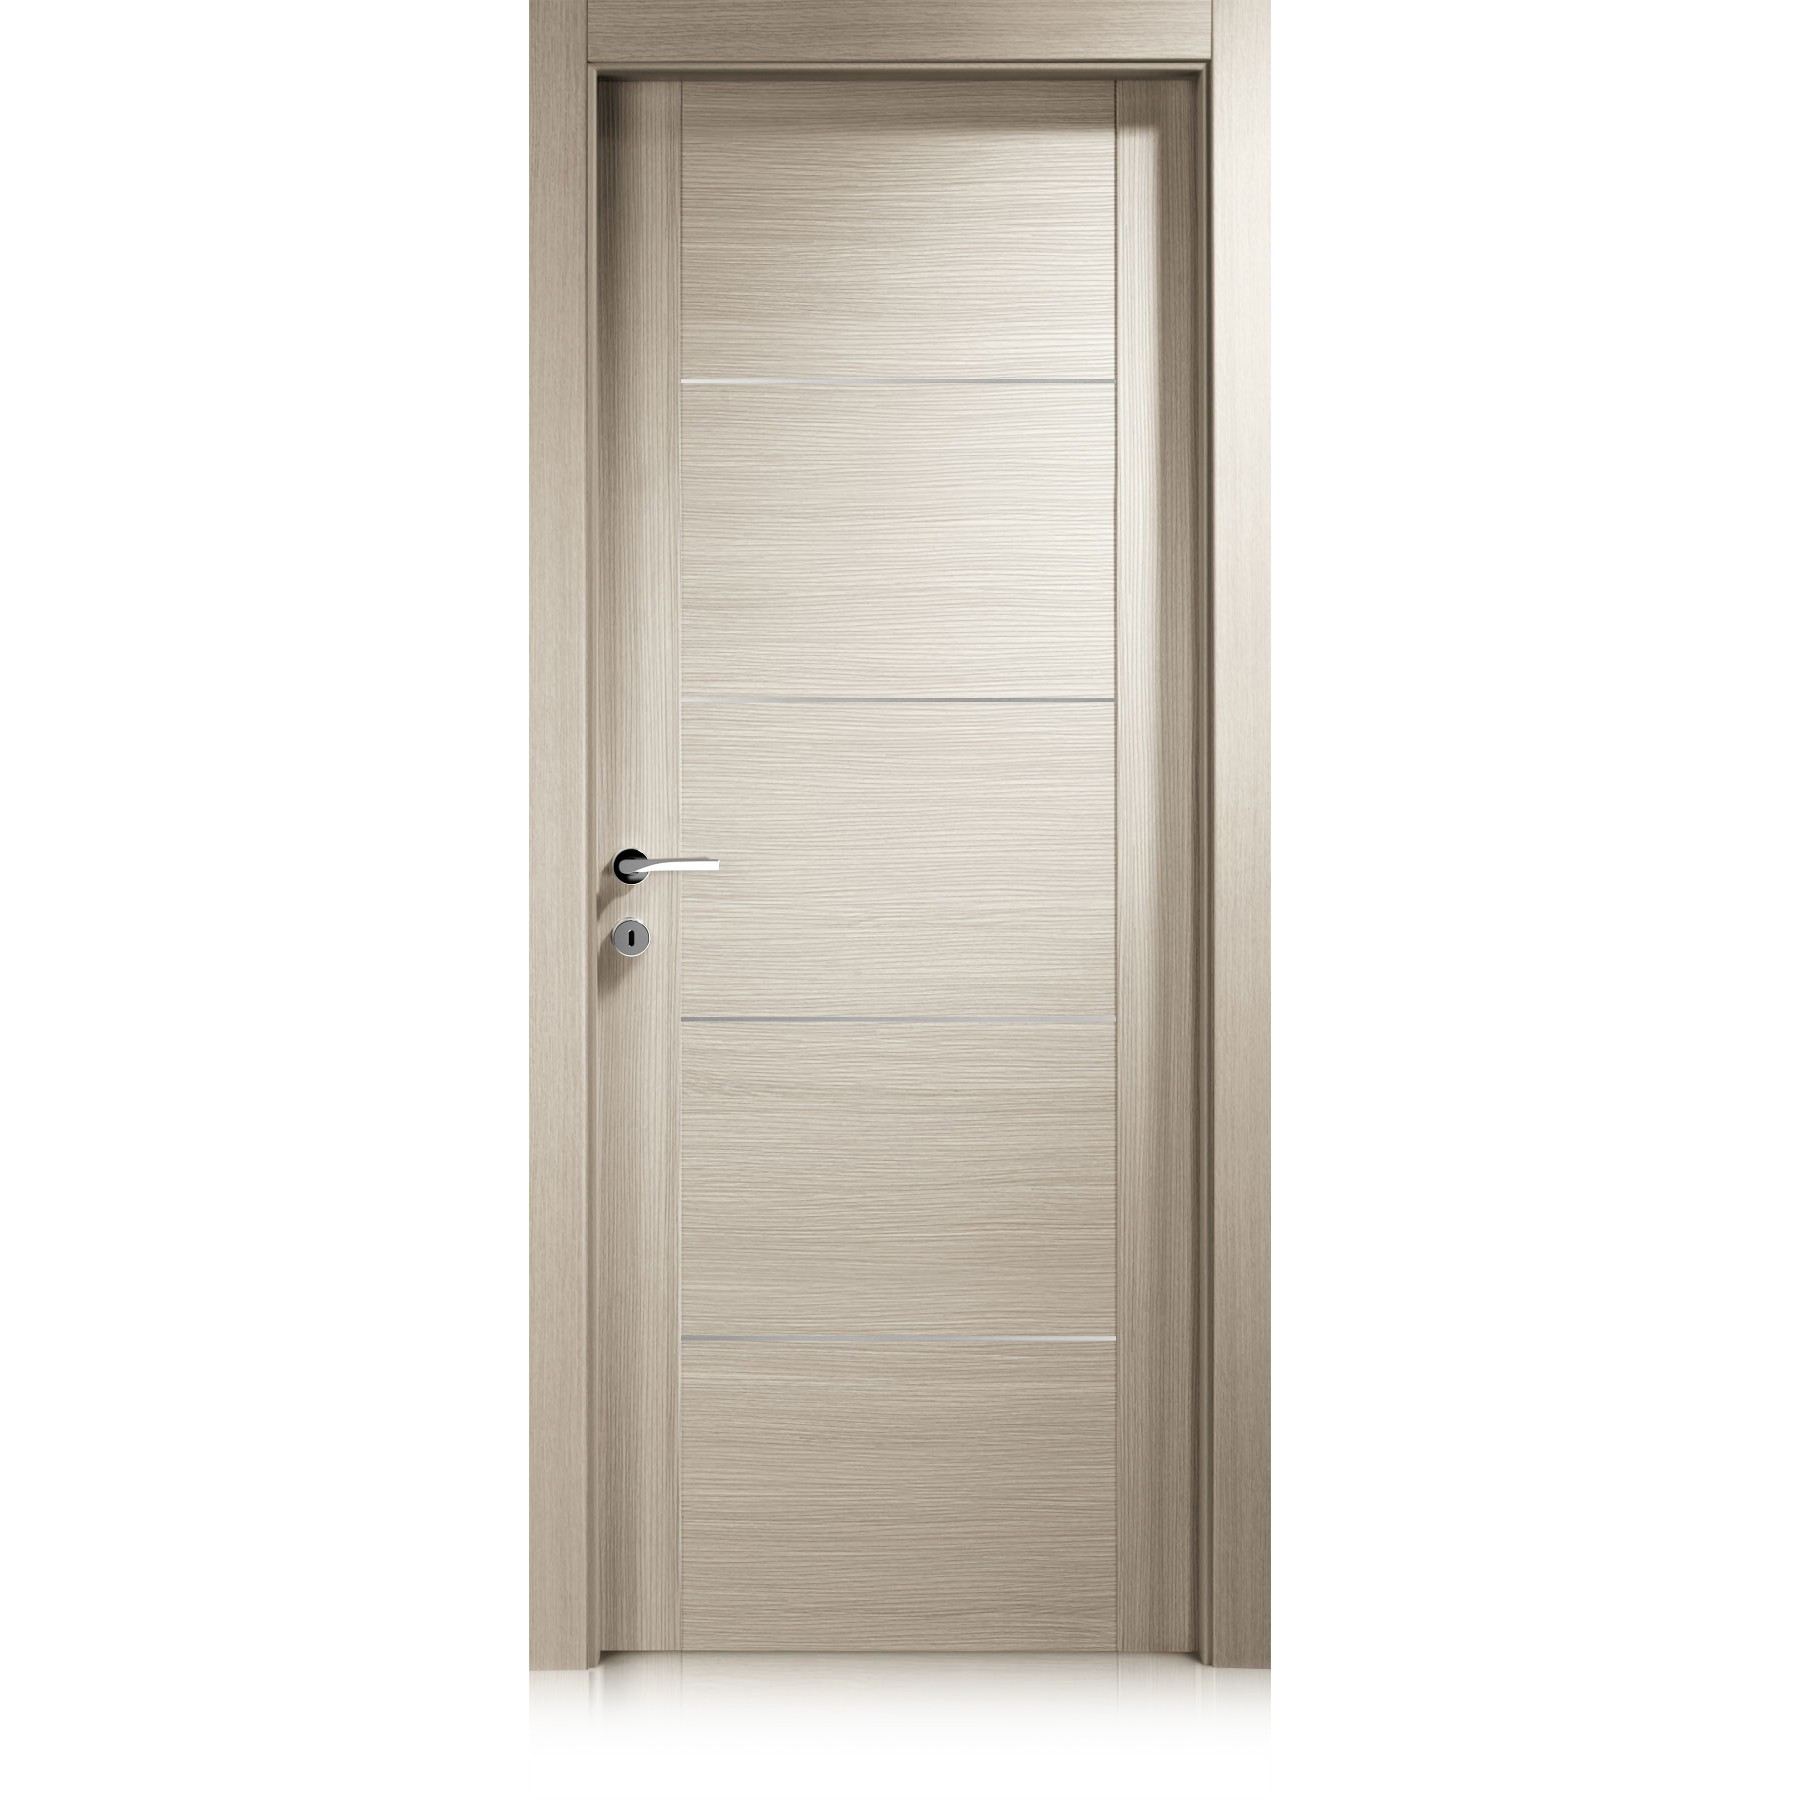 Area / 4 grafis beige door